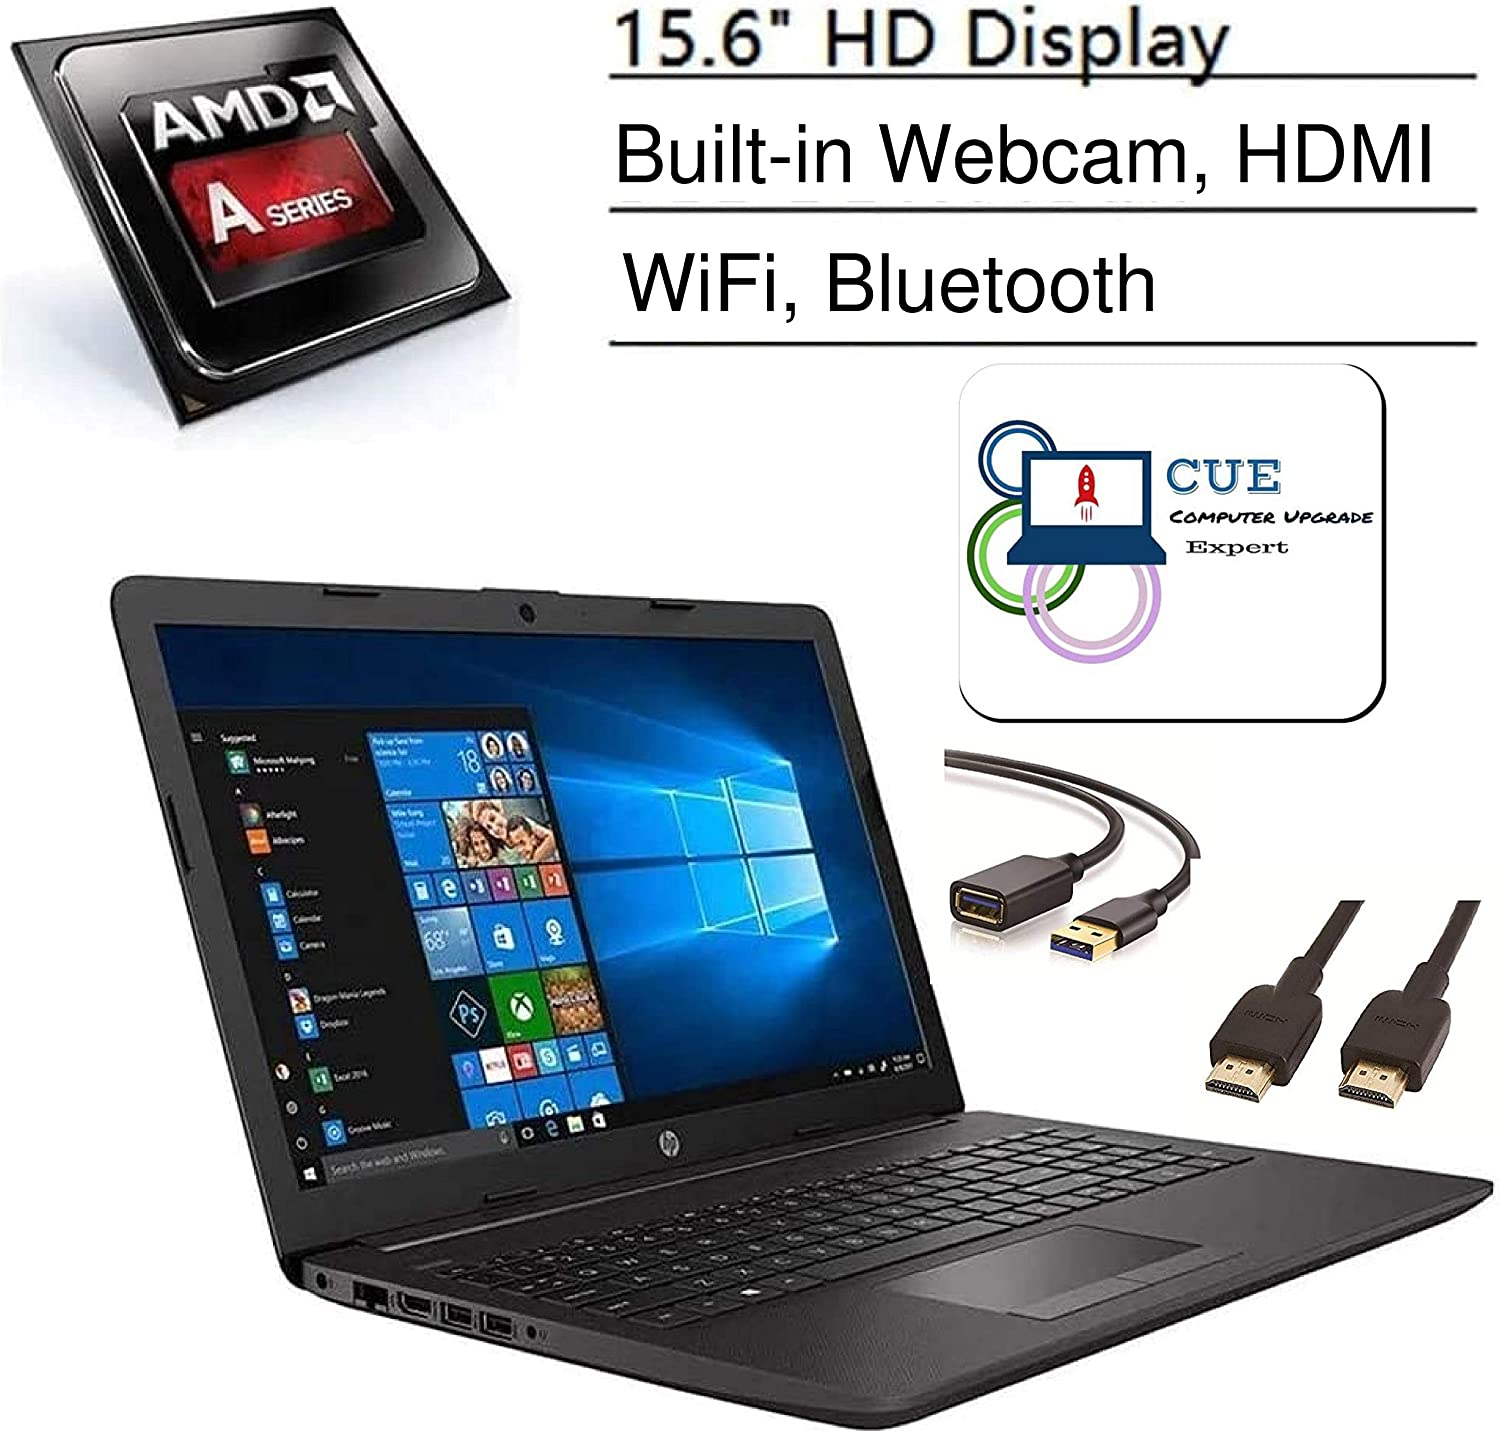 Amazon Com Hp 255 G7 15 6 Hd Display Laptop Amd A4 9125 Dual Core Processor Hdmi Card Reader Wi Fi Bluetooth Windows 10 Home Cue Accessories 4gb Ram 500gb Hdd Computers Accessories